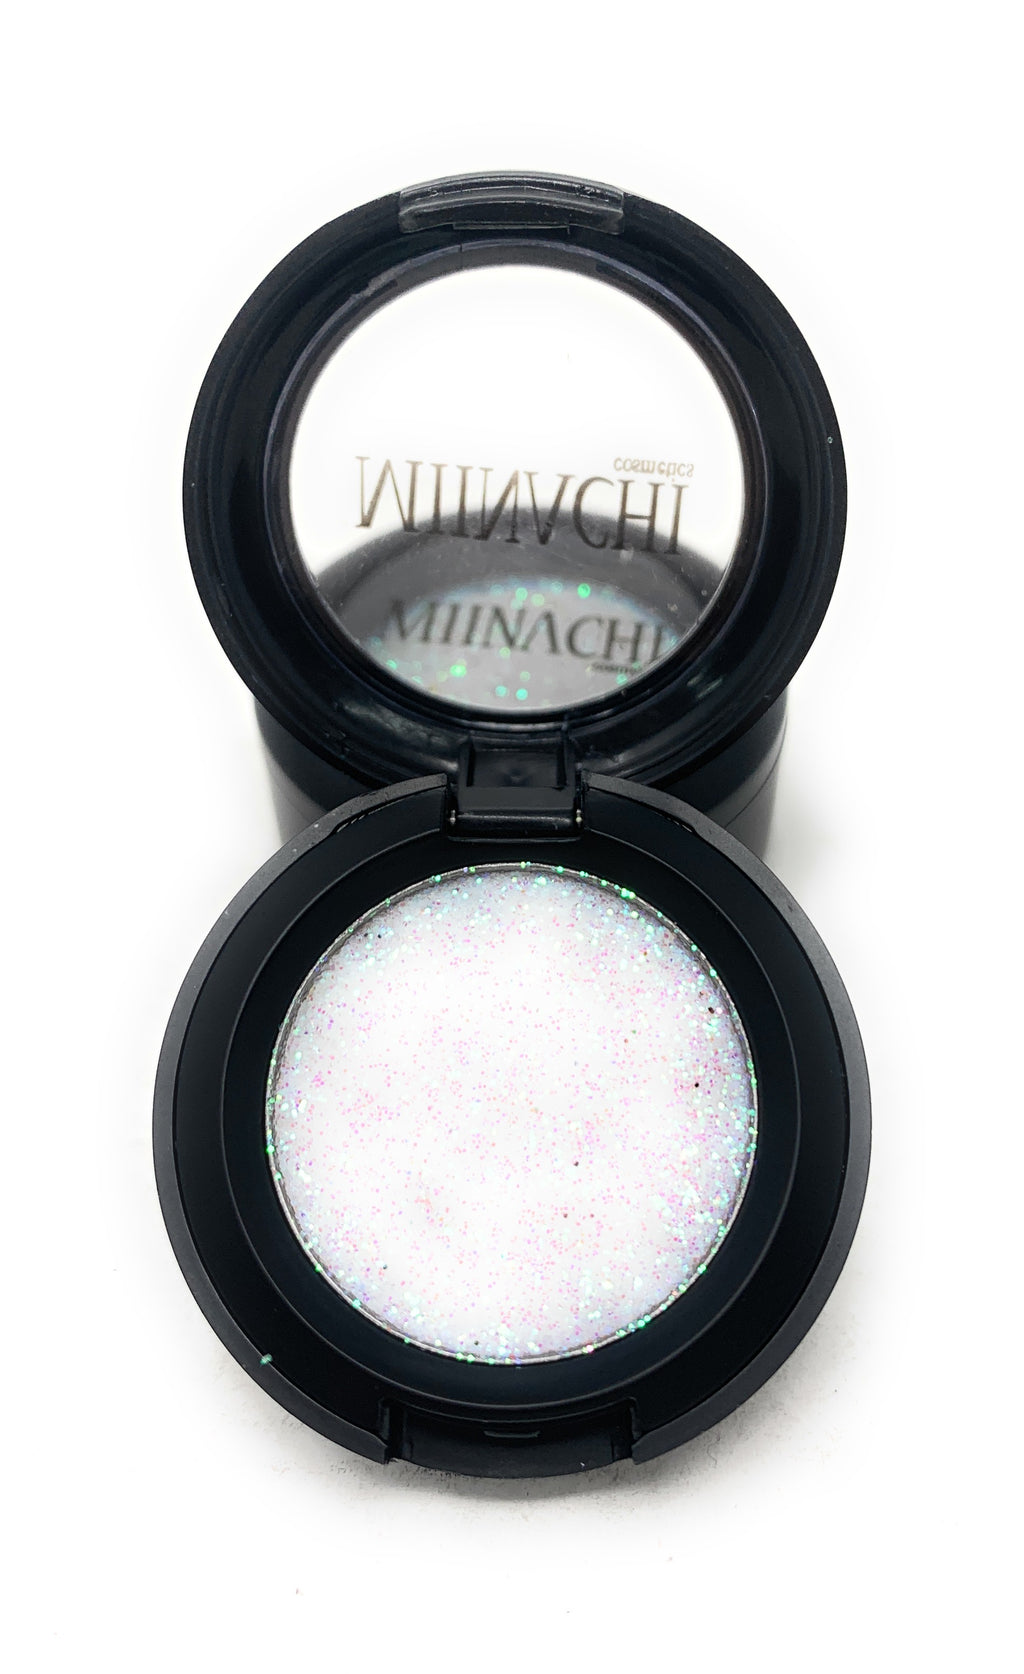 Single Pressed Glitter in the shade Alpha, No Glue Needed, In Compact, Pigmented, No Fall Out, Glitter, Cosmetic Grade Glitter